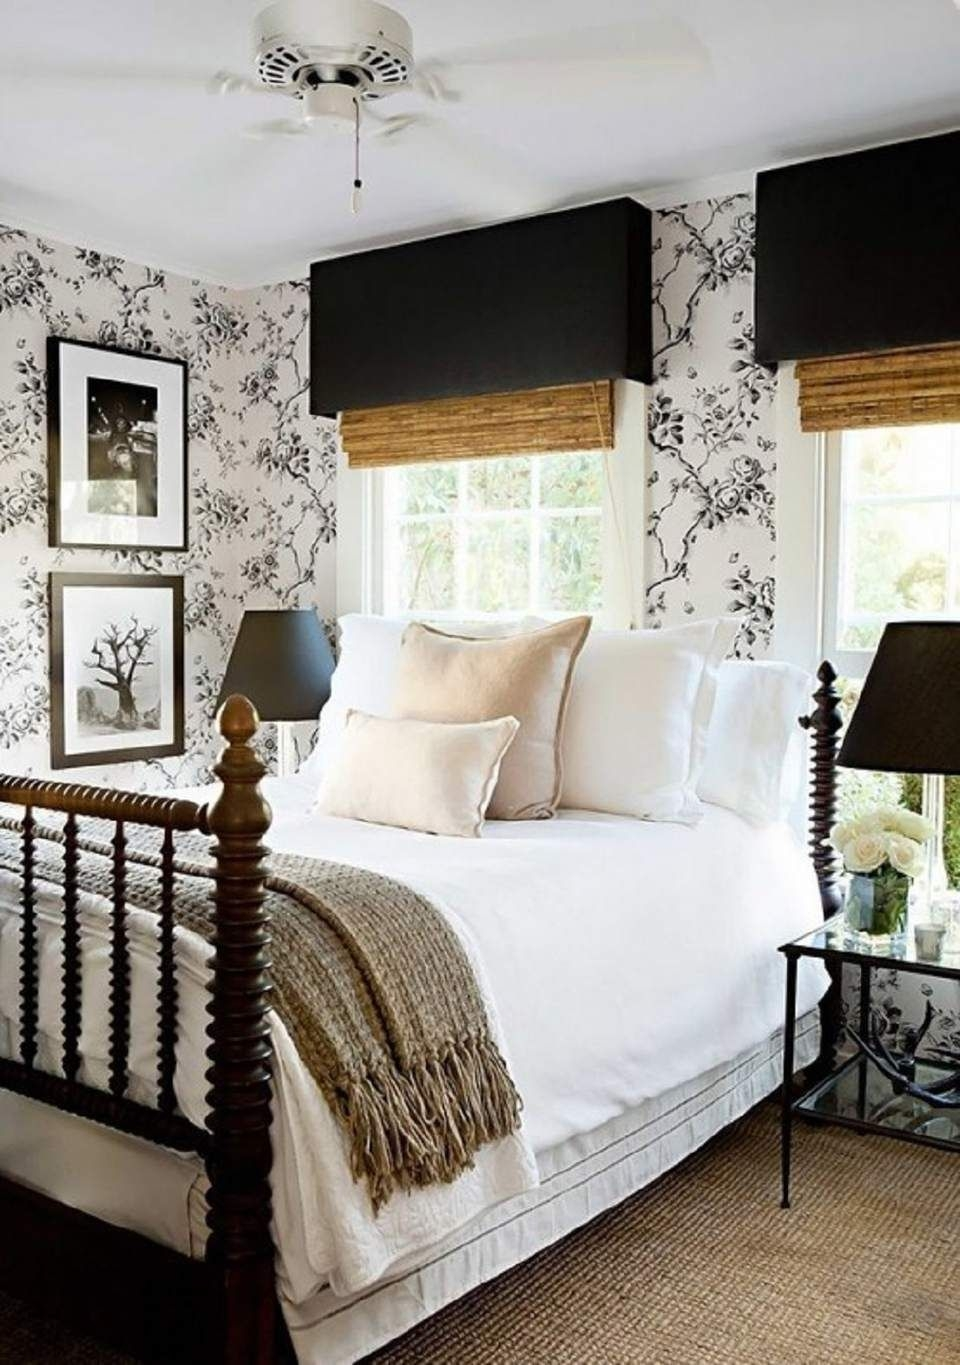 50 Decorating Ideas For Farmhousestyle Bedrooms